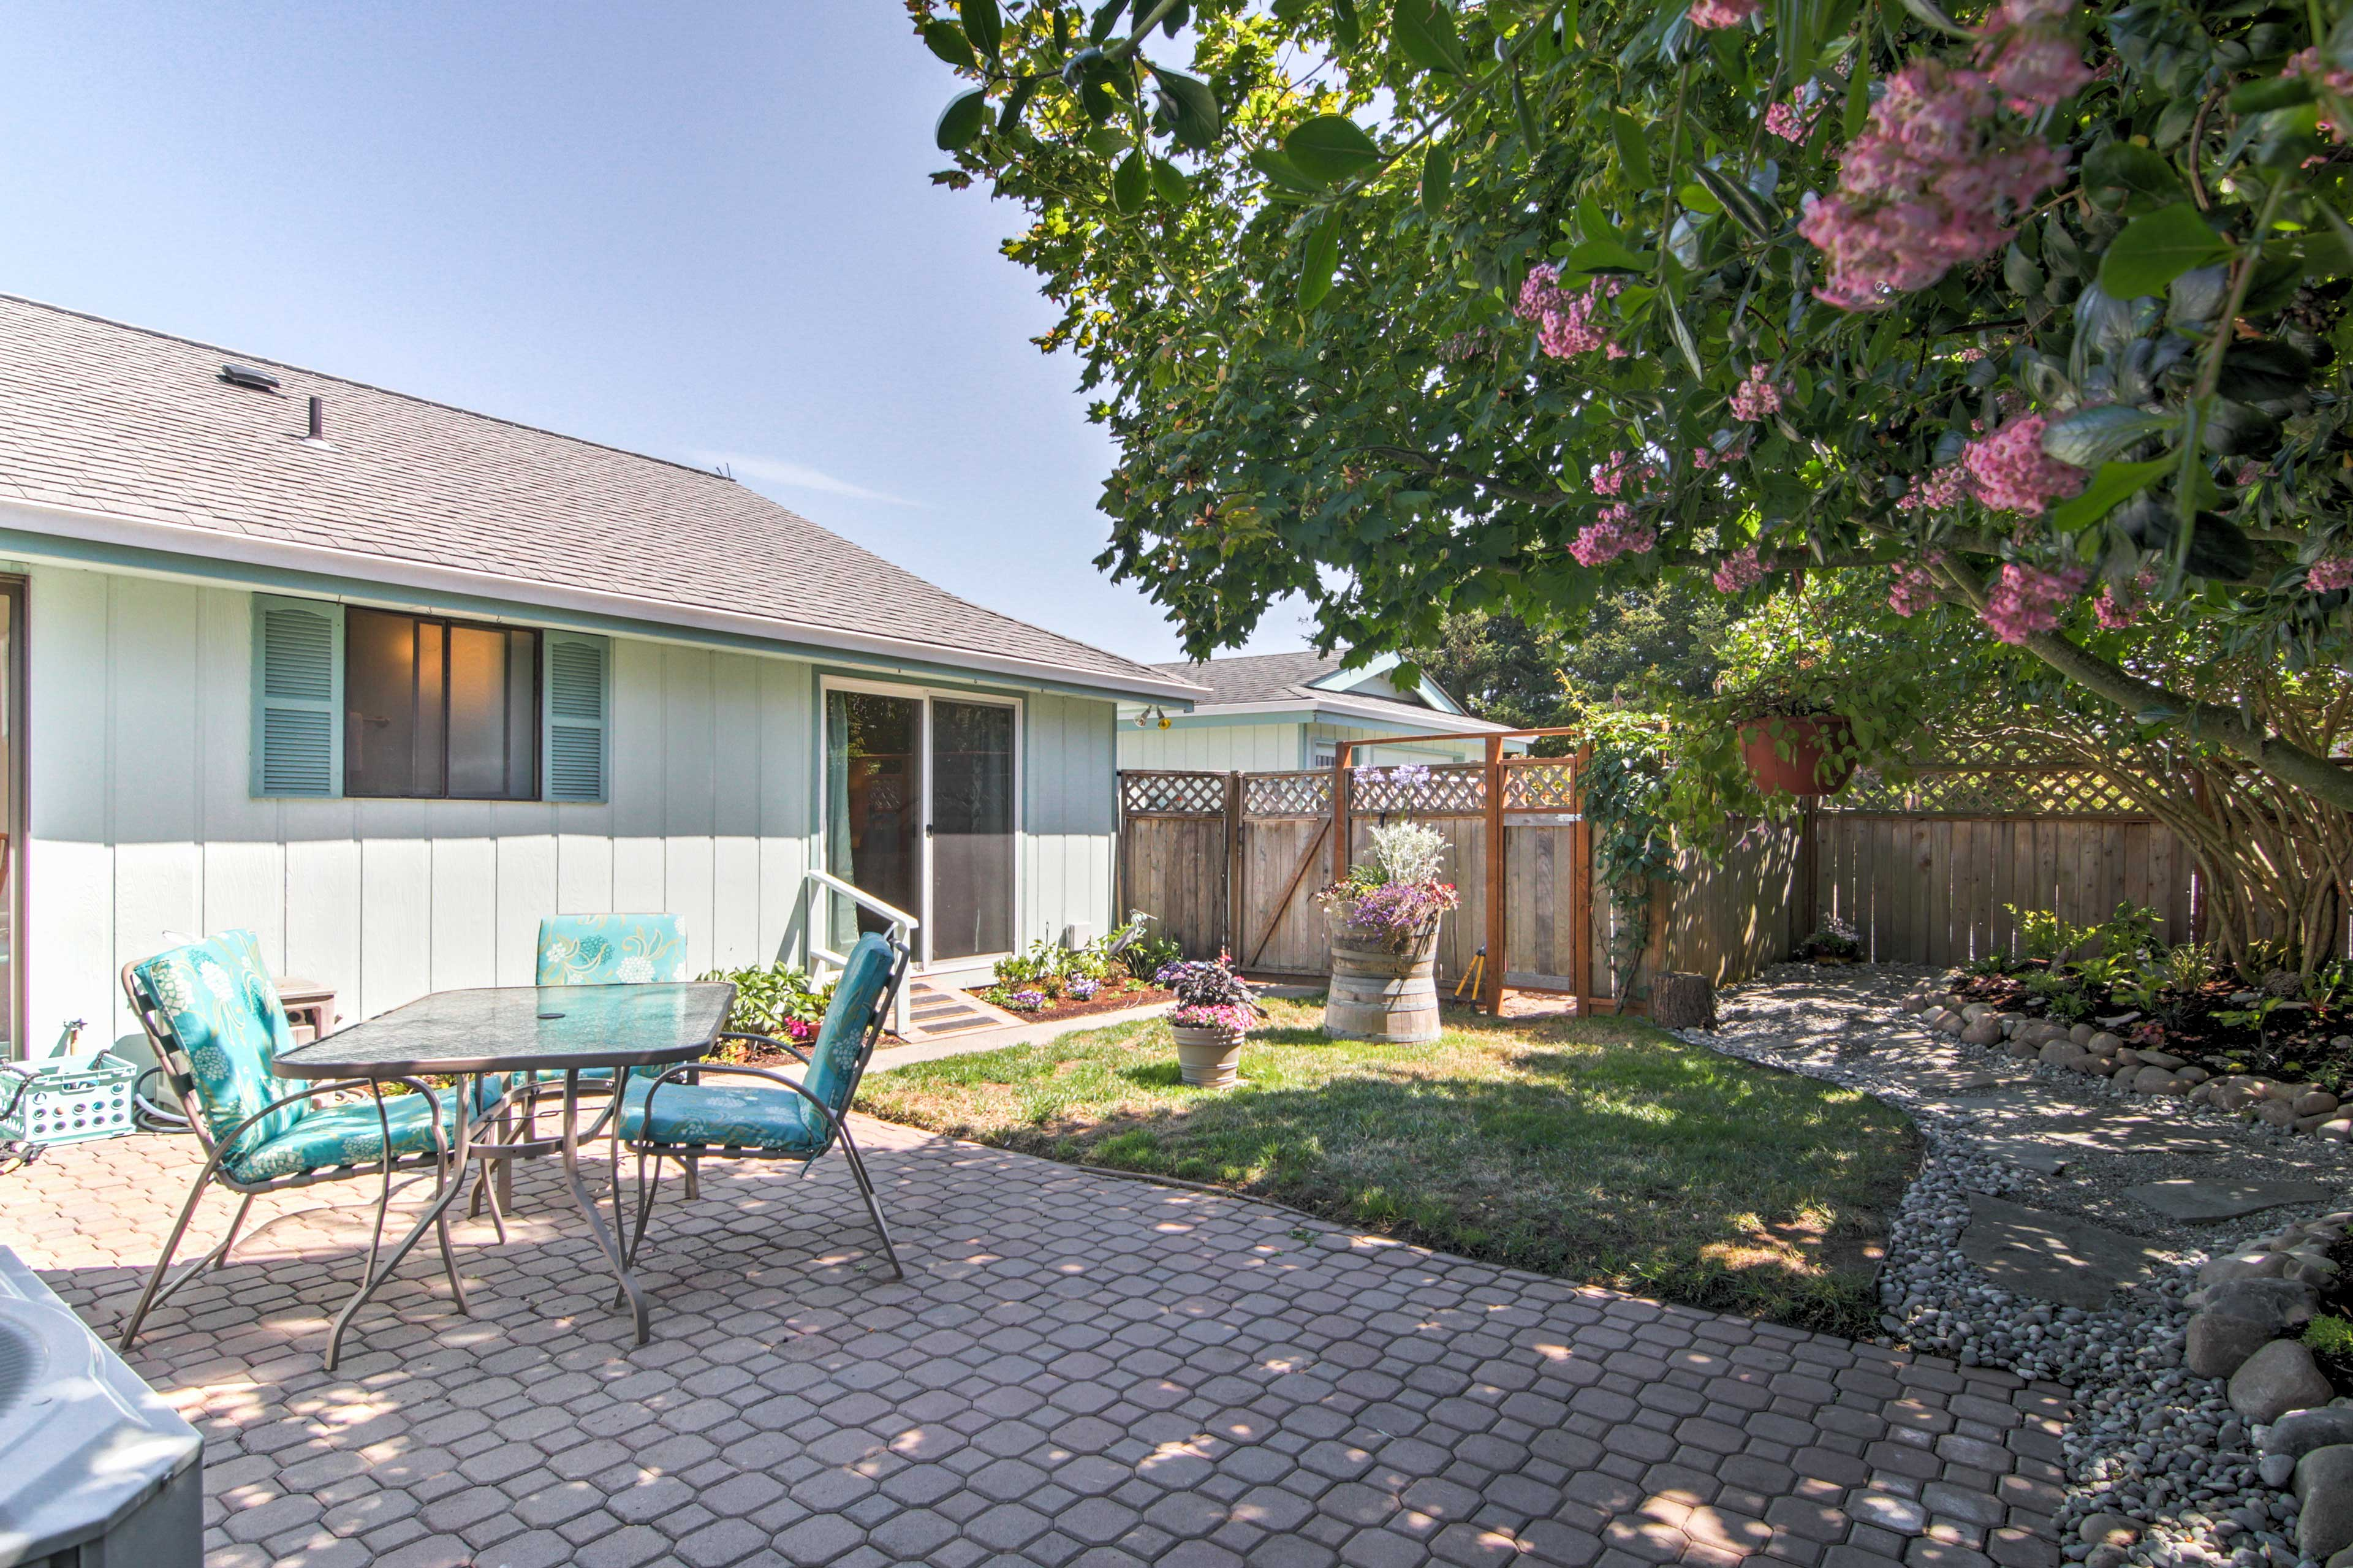 The home features a private courtyard sitting area where you can enjoy fresh air.